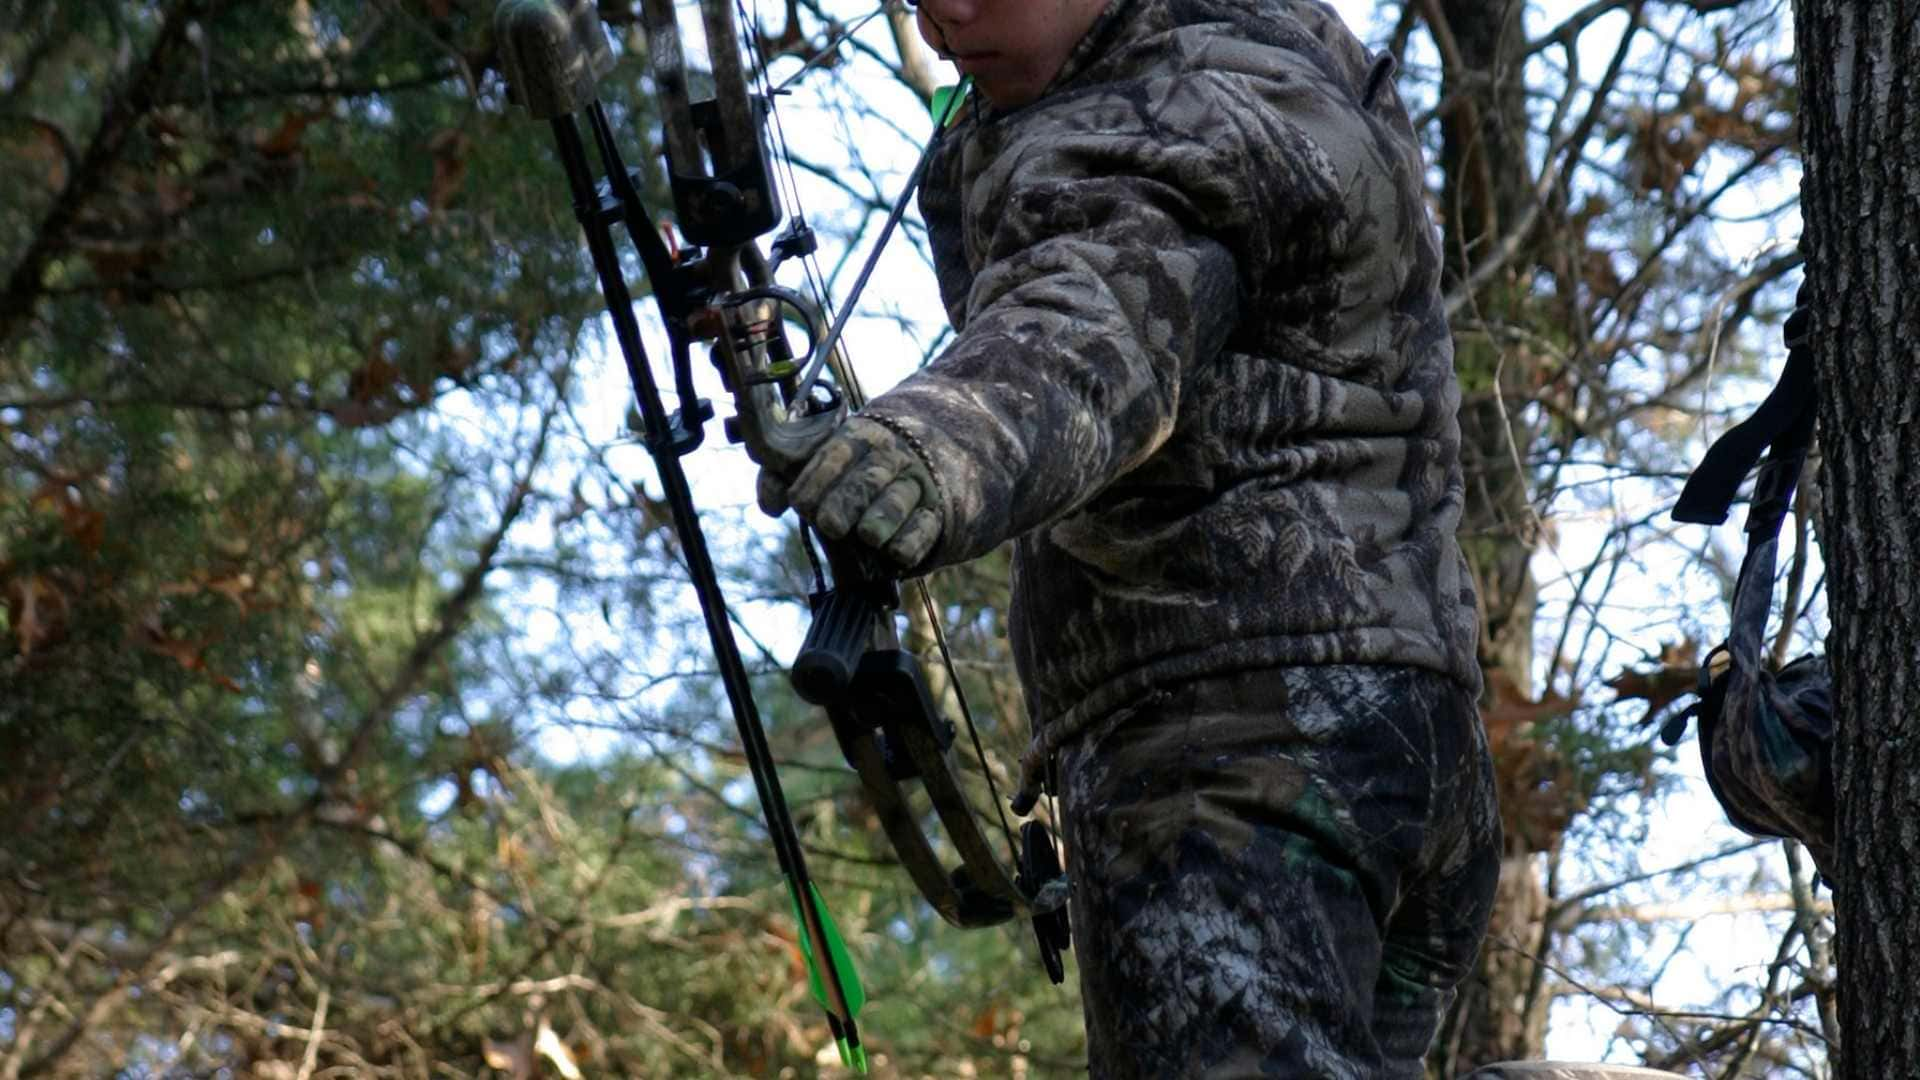 hunter in treestand aiming with bow